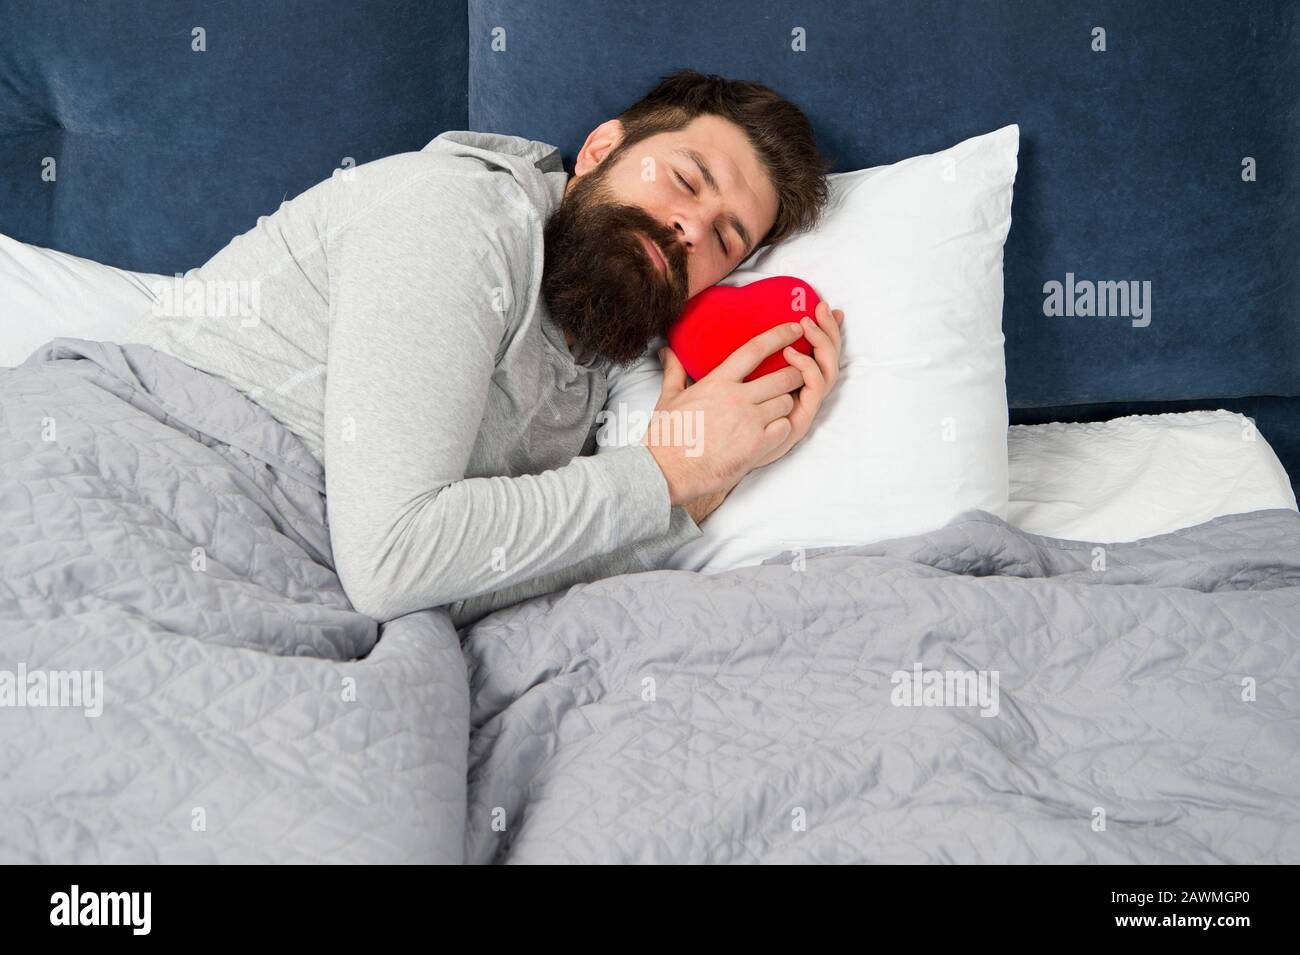 Happy Valentines Day Bearded Man Hold Decoration Heart While Sleeping Heart Full Of Love Start Day With Romantic Hipster With Present Sweet Heart Morning Surprise From His Valentine Stock Photo Alamy